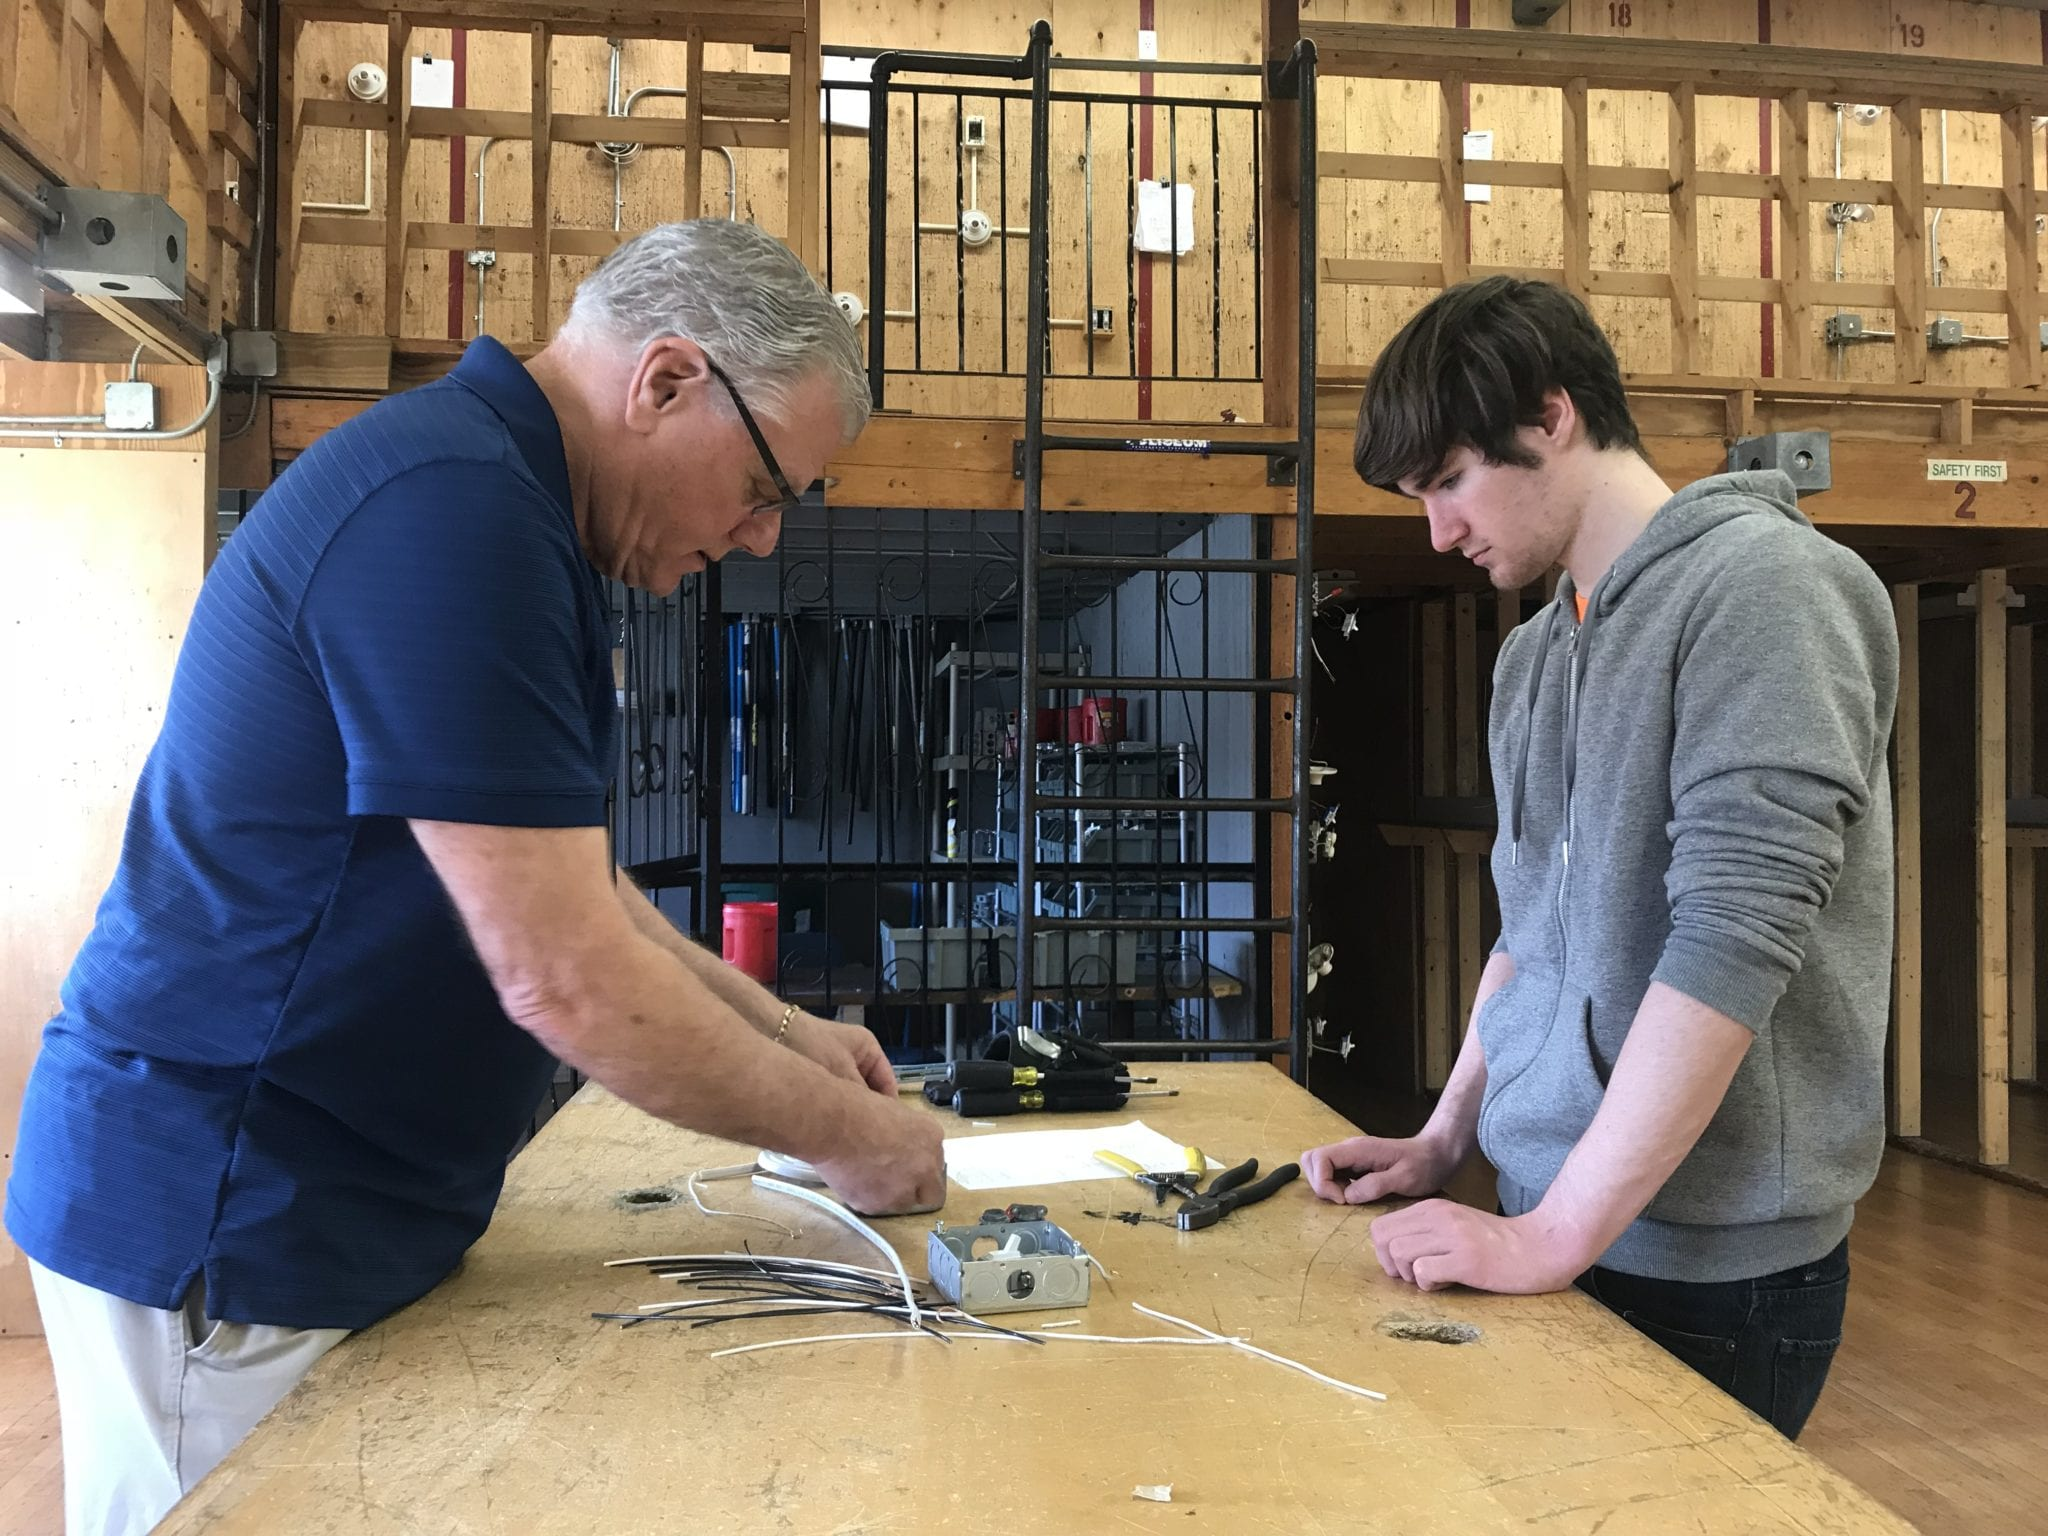 Electrical instructor Frank Barker works with Woburn High School senior Jean Luc Walsh on wiring a power switch. (Courtesy Photo)